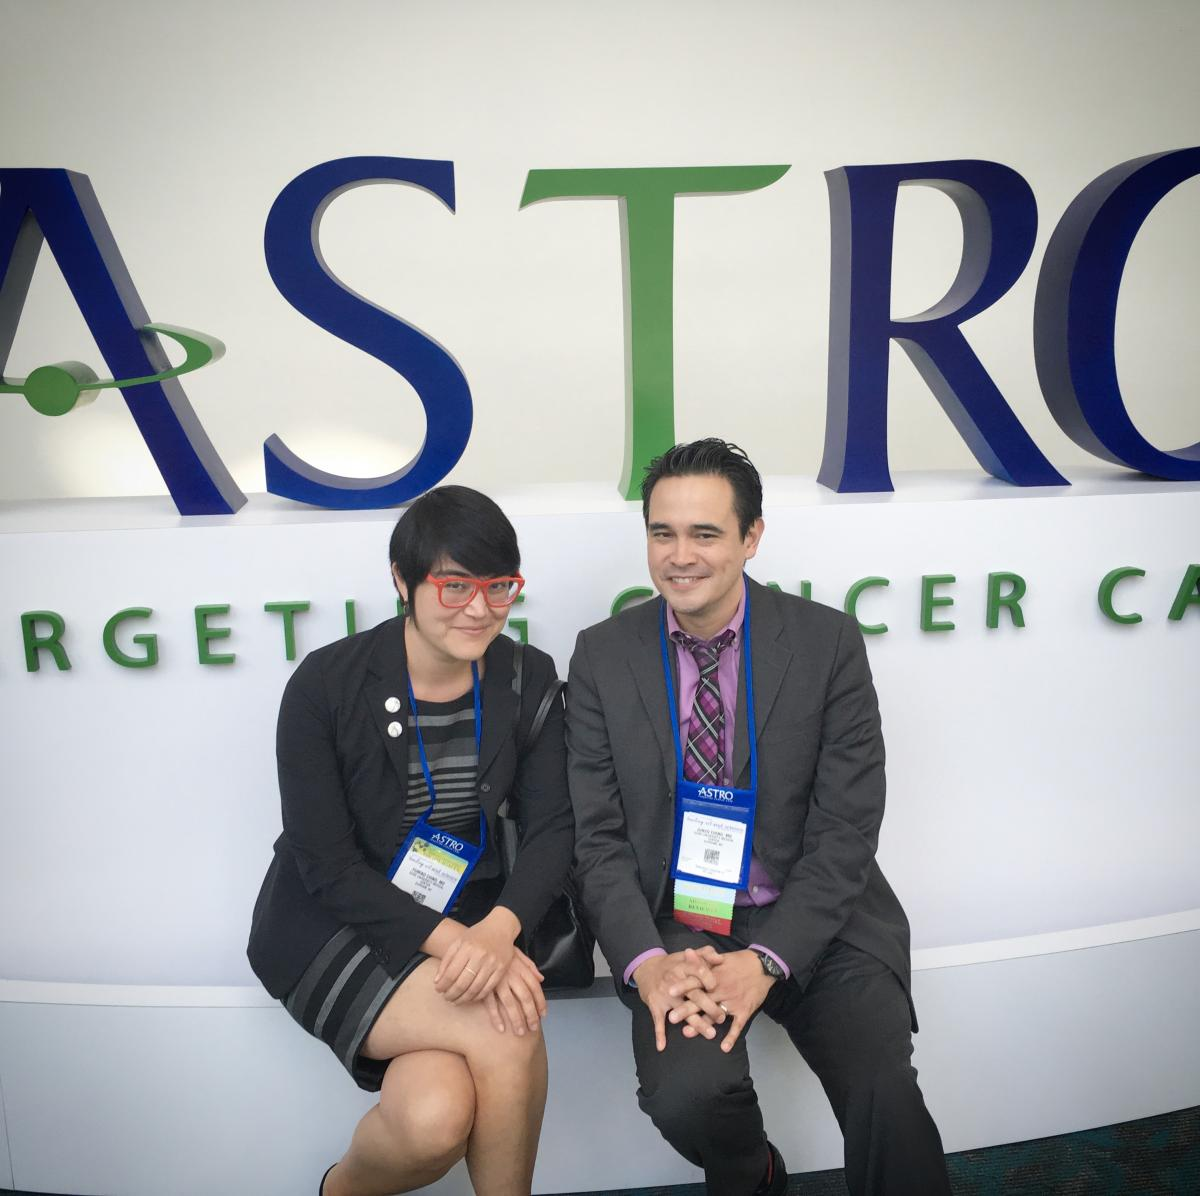 Siblings Fumiko Chino, MD, and Junzo Chino, MD, co-authors of a study, with Arif Kamal, MD, comparing opioid associated deaths in cancer patients and survivors vs. the general population.